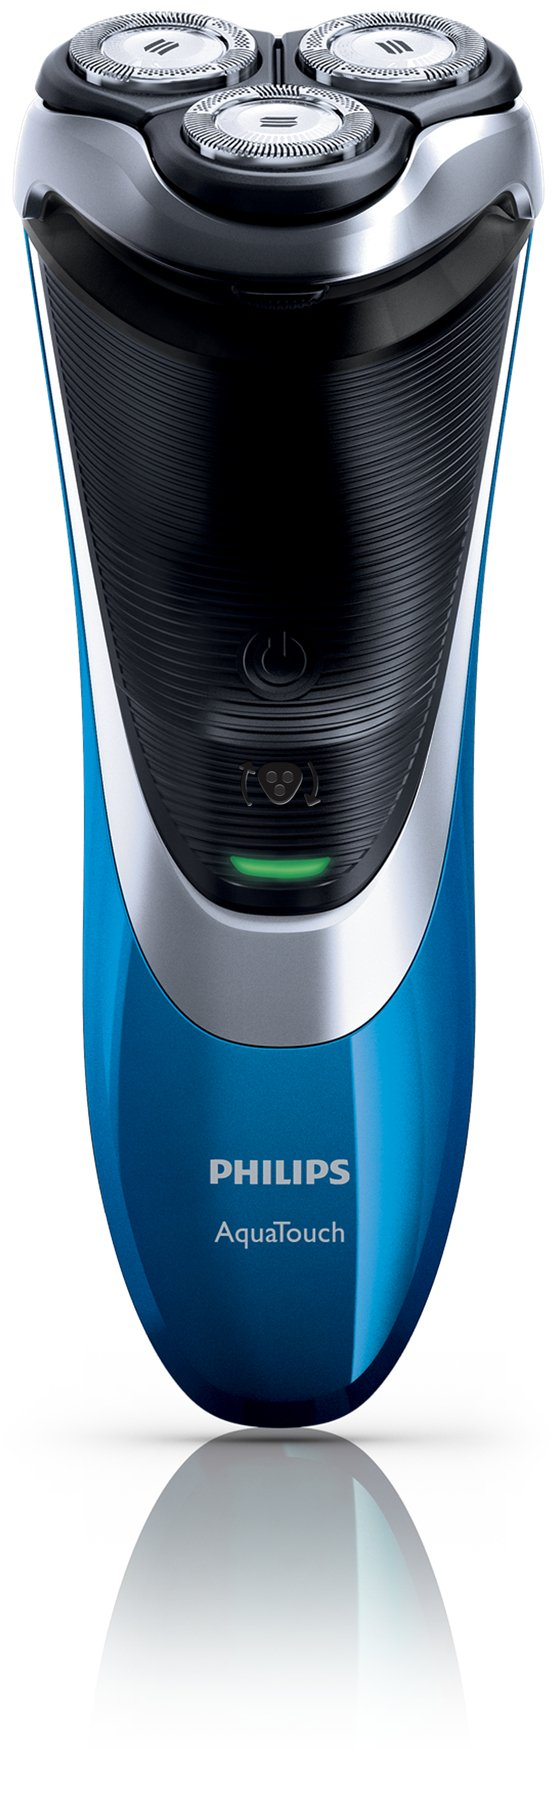 Philips AT890 AquaTouch Wet and Dry electric shaver with pop up trimmer